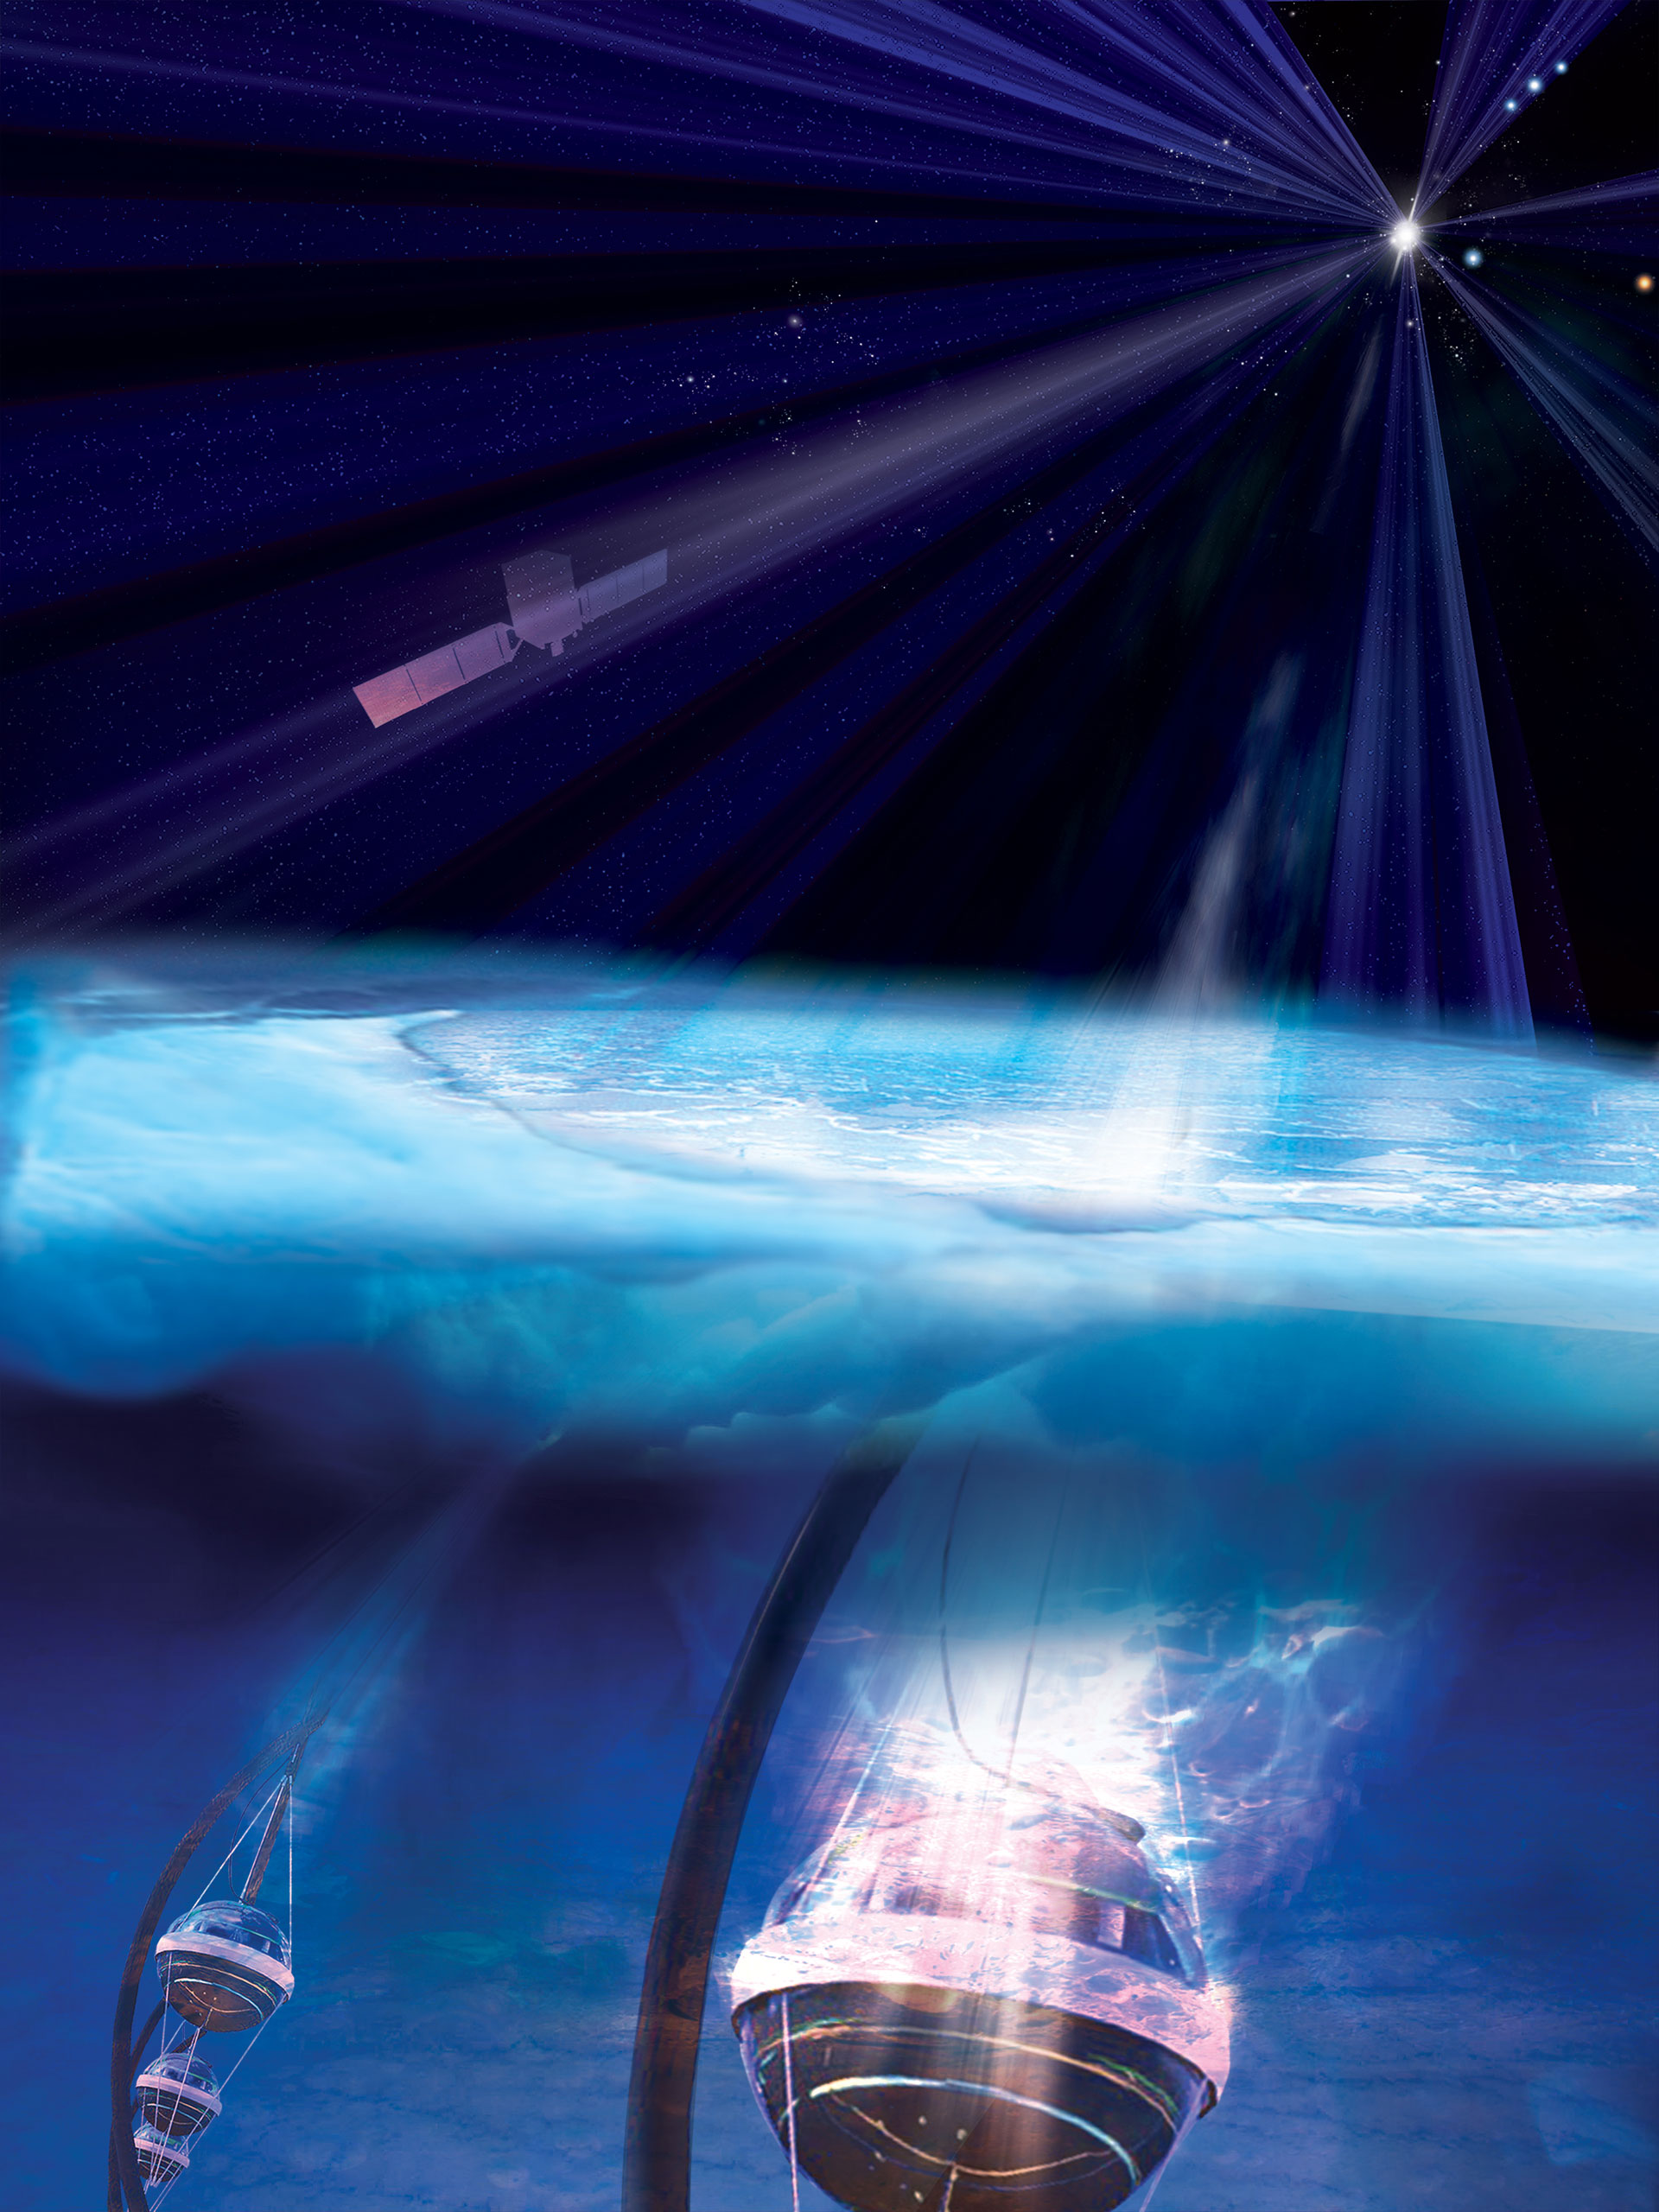 Astronomers Trace Source of Cosmic Neutrino to Monster ...Icecube Neutrino Observatory July